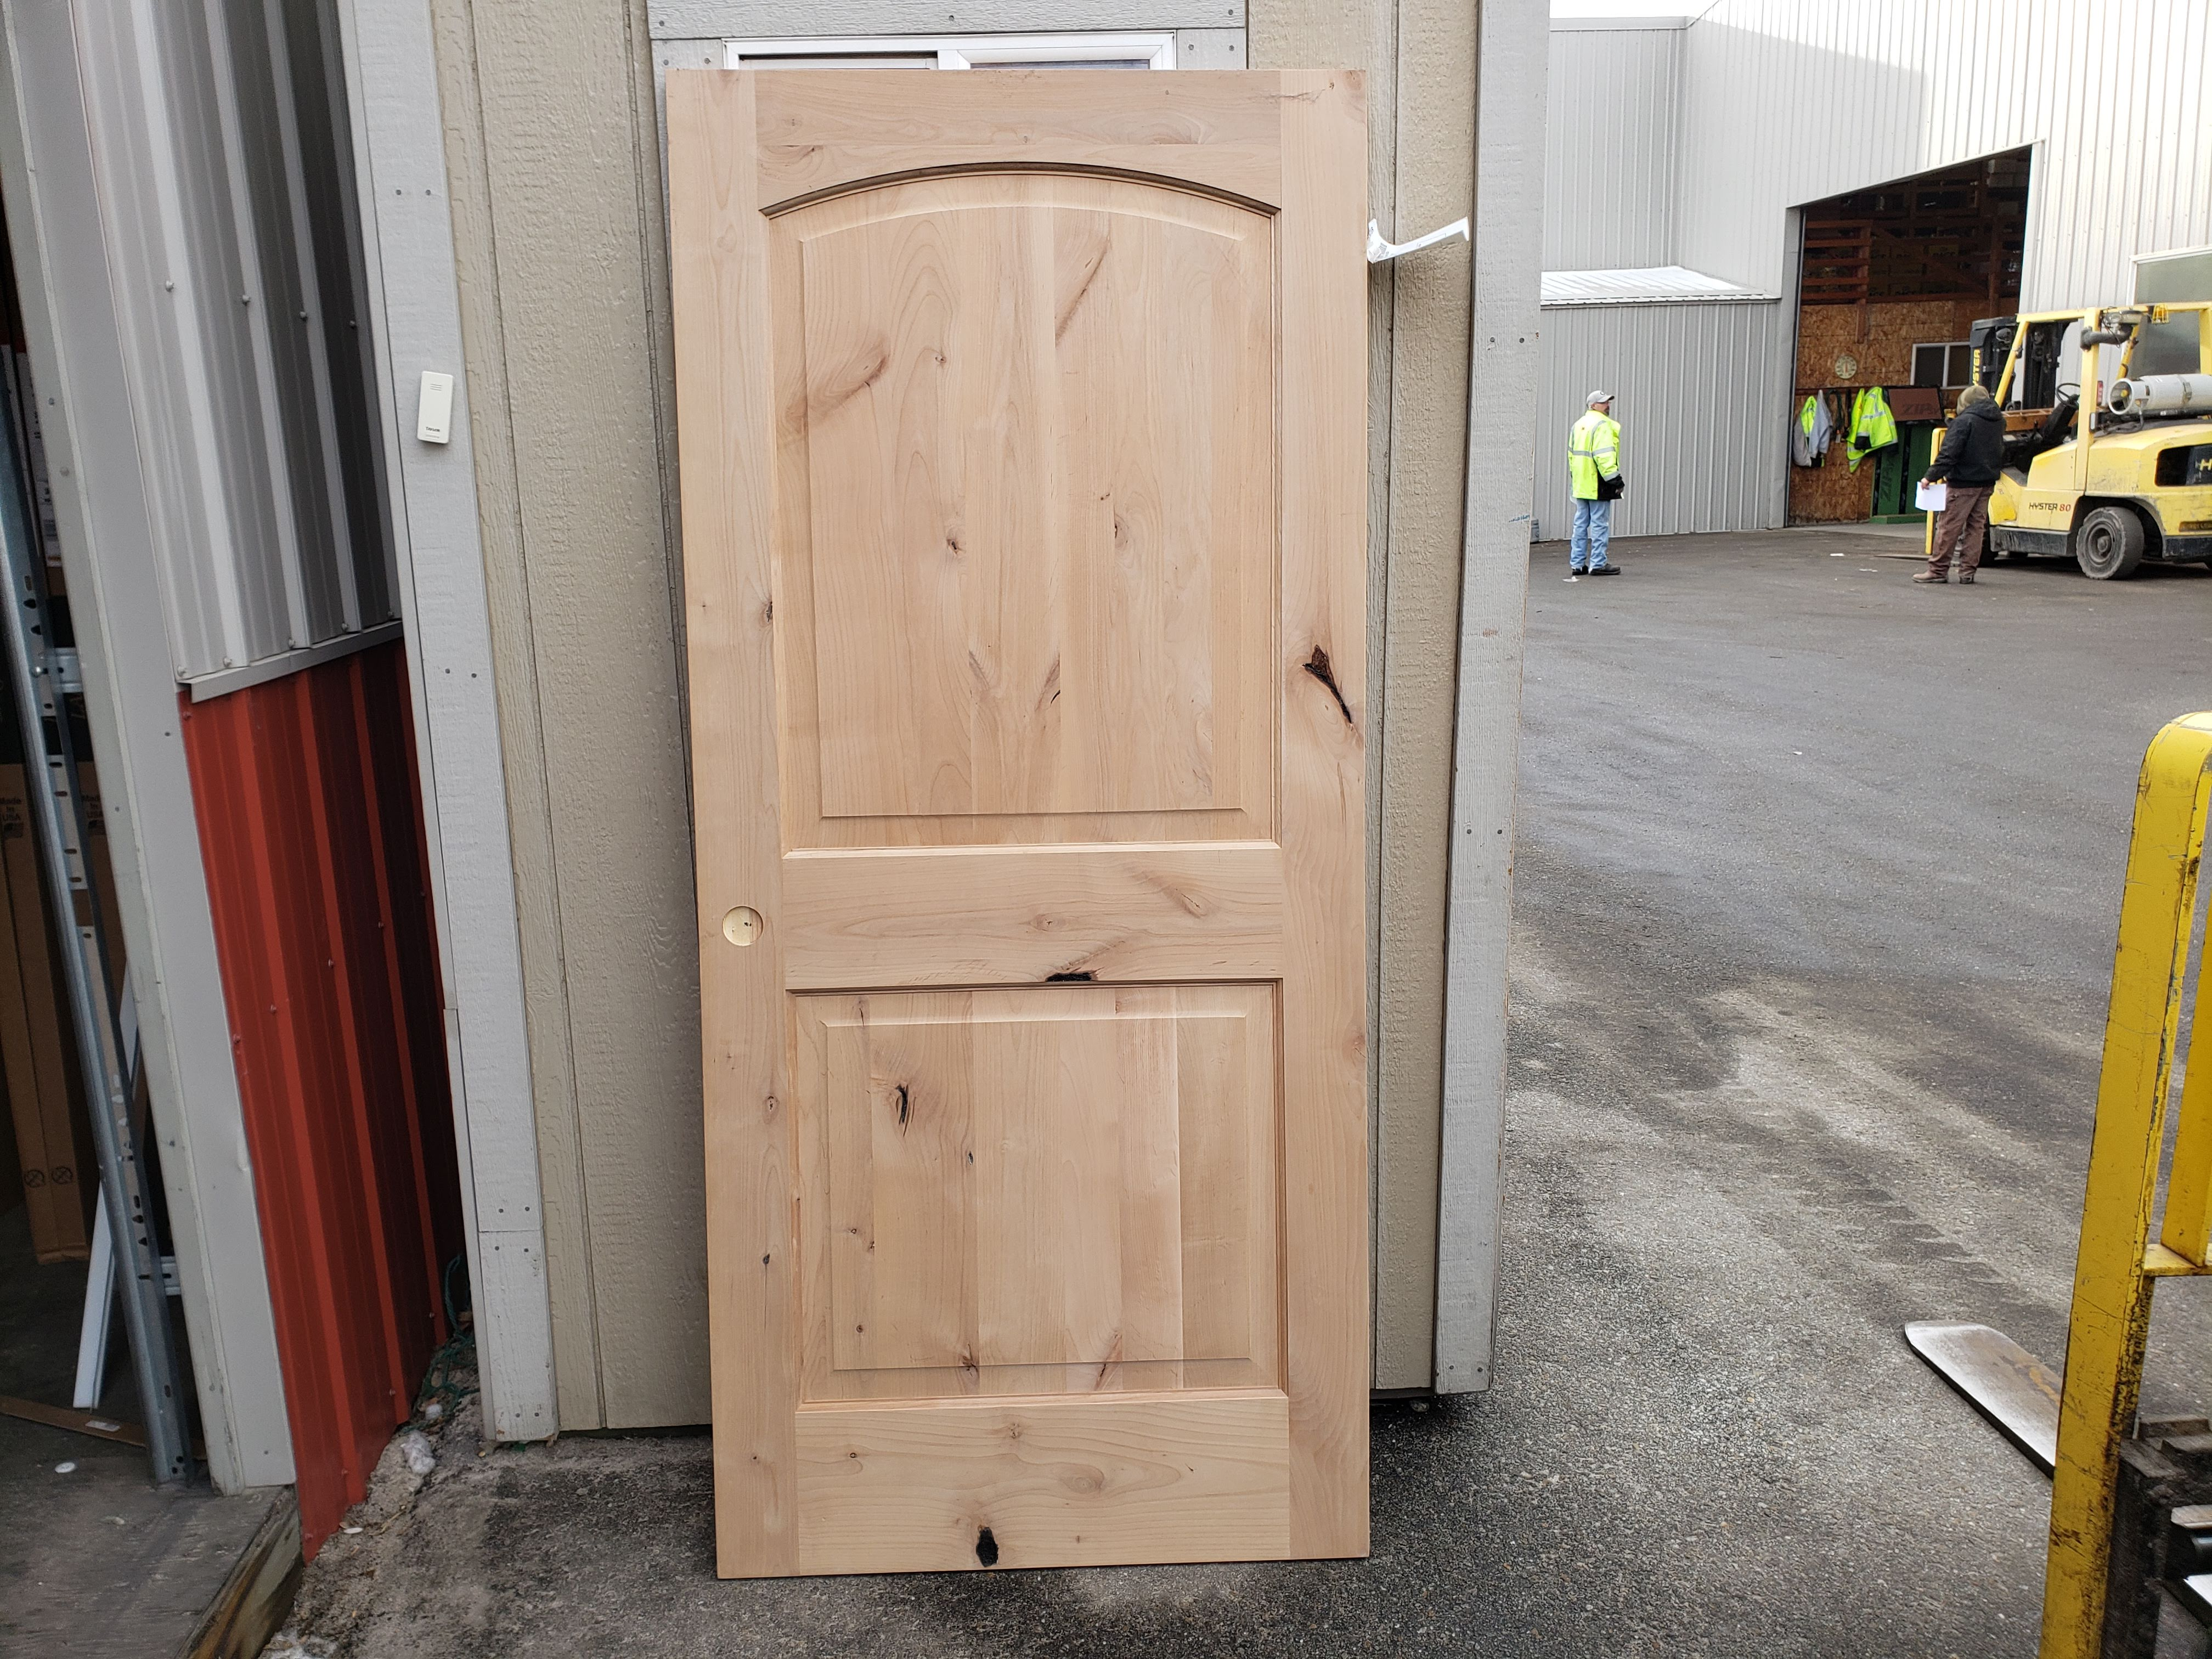 6/0 Double Bypass Doors